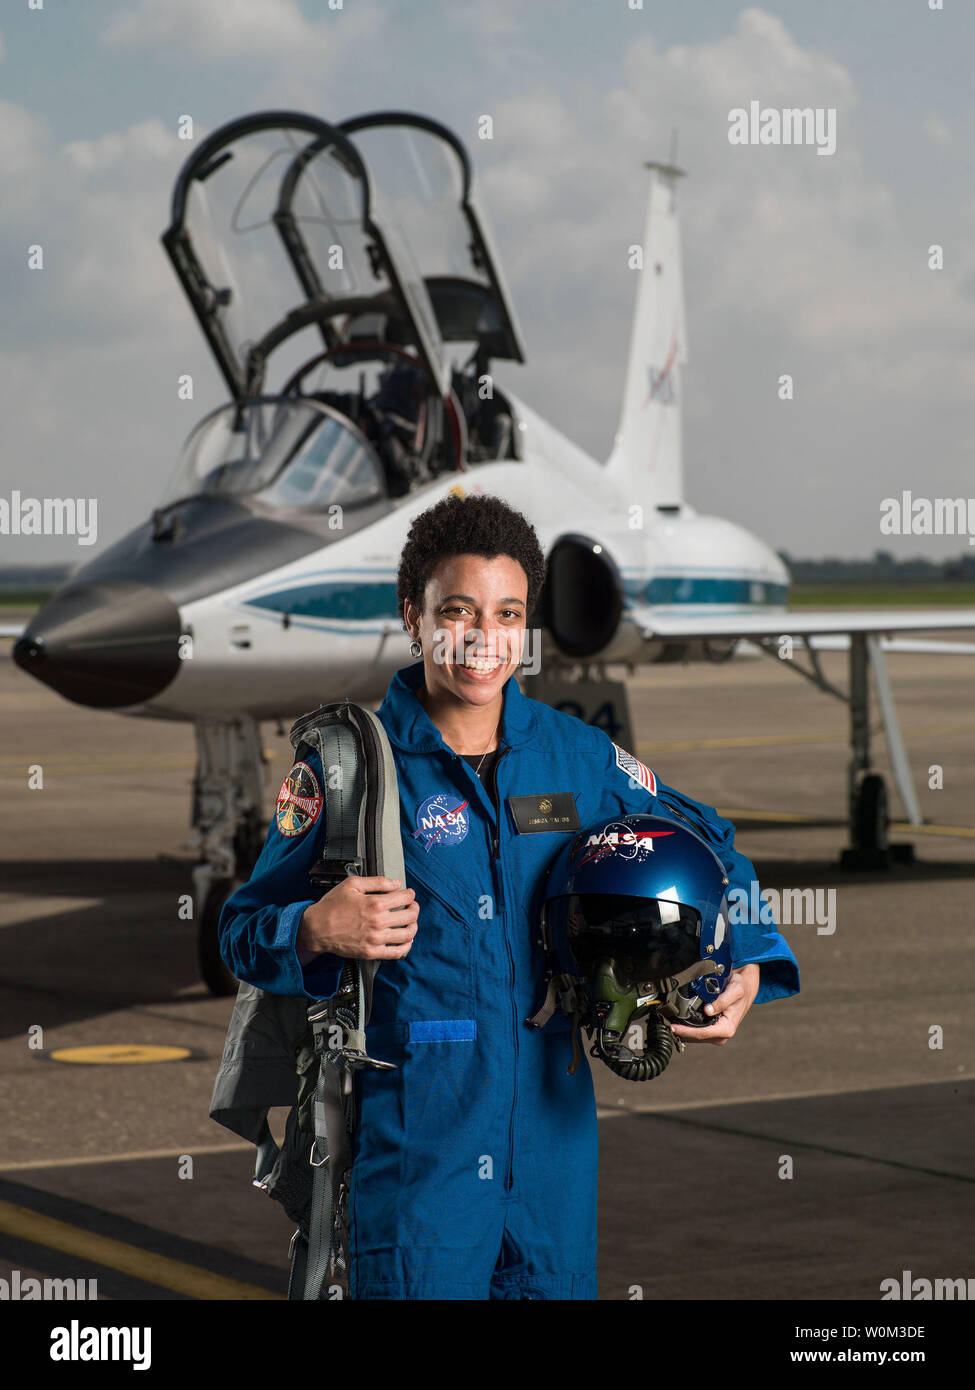 Jessica Watkins has been selected by NASA to join the 2017 Astronaut Candidate Class. She will report for duty in August 2017. The Colorado native earned a Bachelor's degree in Geological and Environmental Sciences at Stanford University, and a Doctorate in Geology from the University of California, Los Angeles (UCLA). NASA Photo by Robert Markowitz/UPI - Stock Image